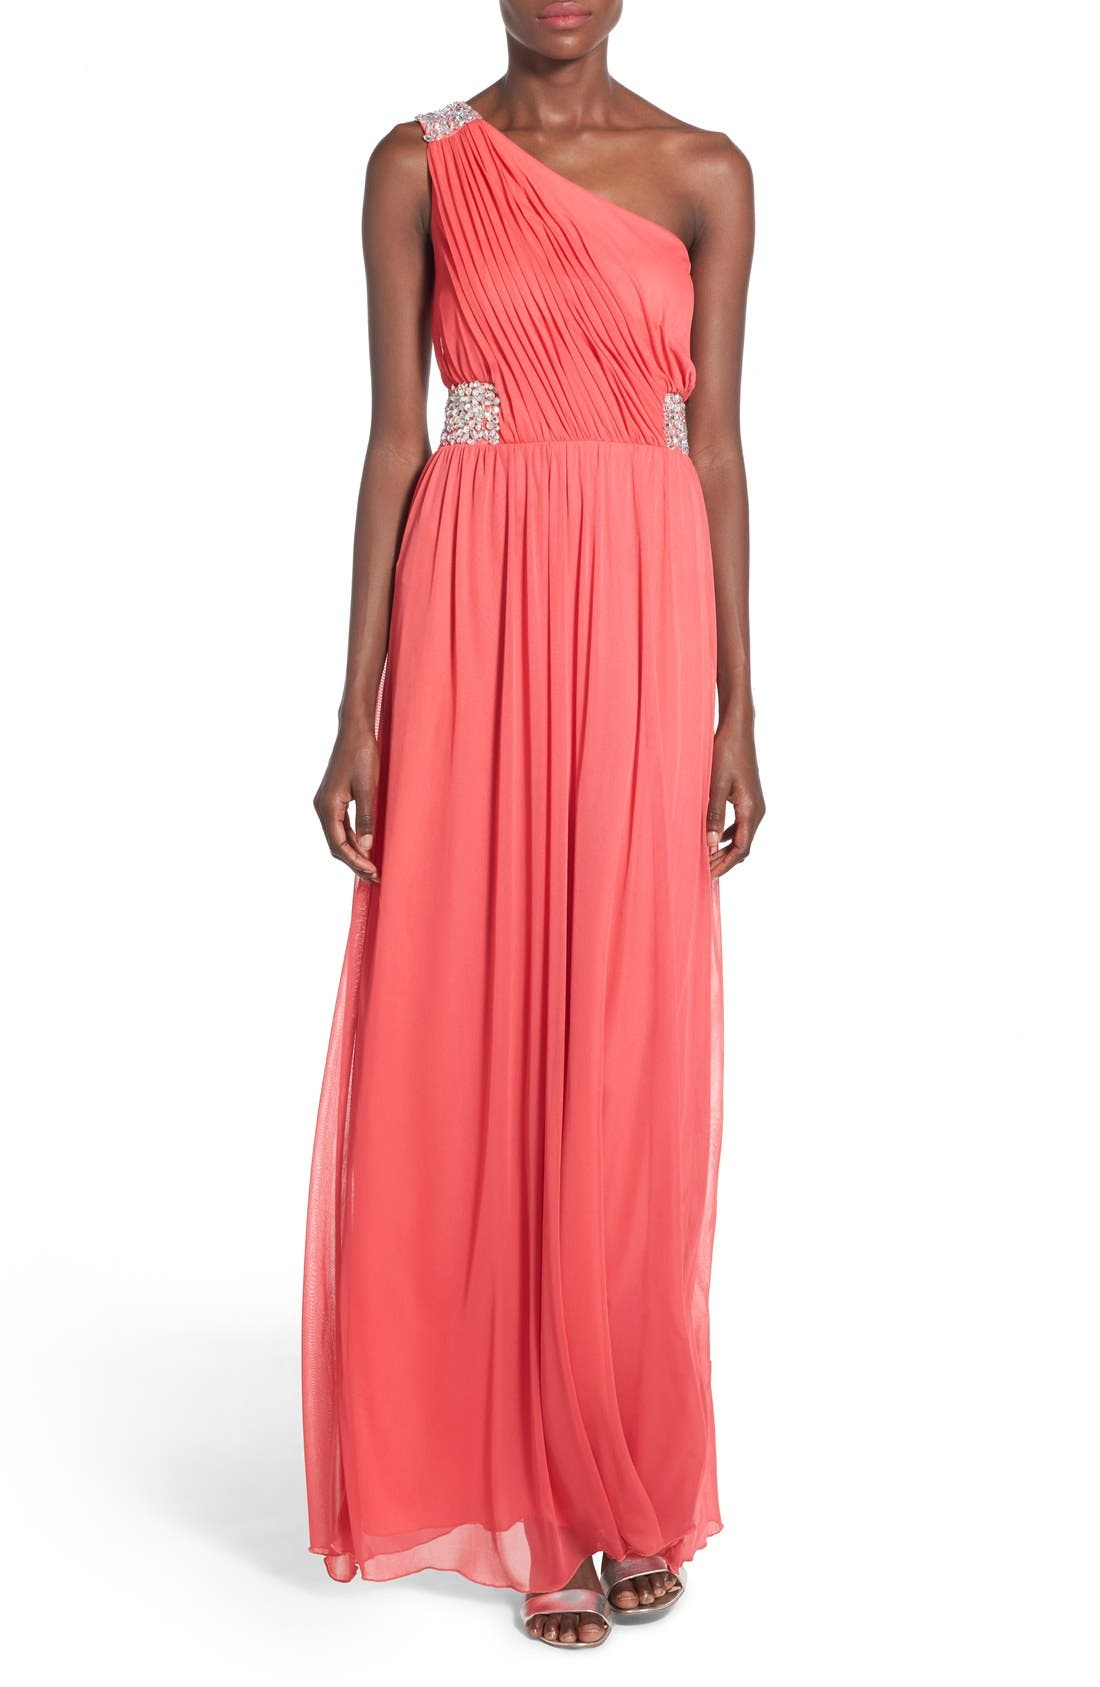 Alternate Image 1 Selected - Speechless 'Shelby' Embellished One Shoulder Gown